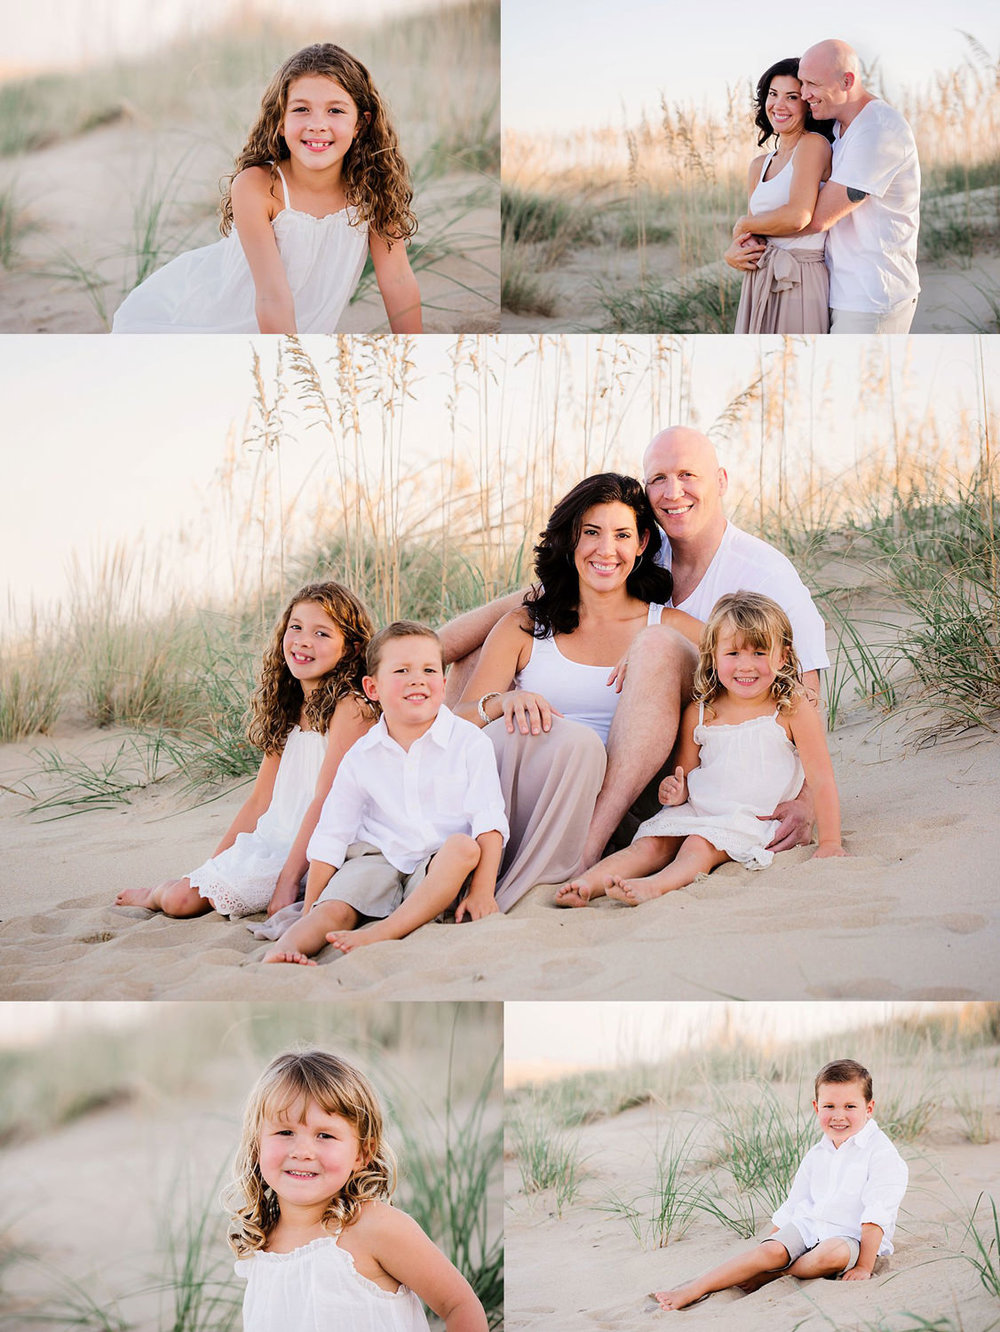 award-winning-family-lifestyle-photographer-virginia-beach-melissa-bliss-photography.jpg